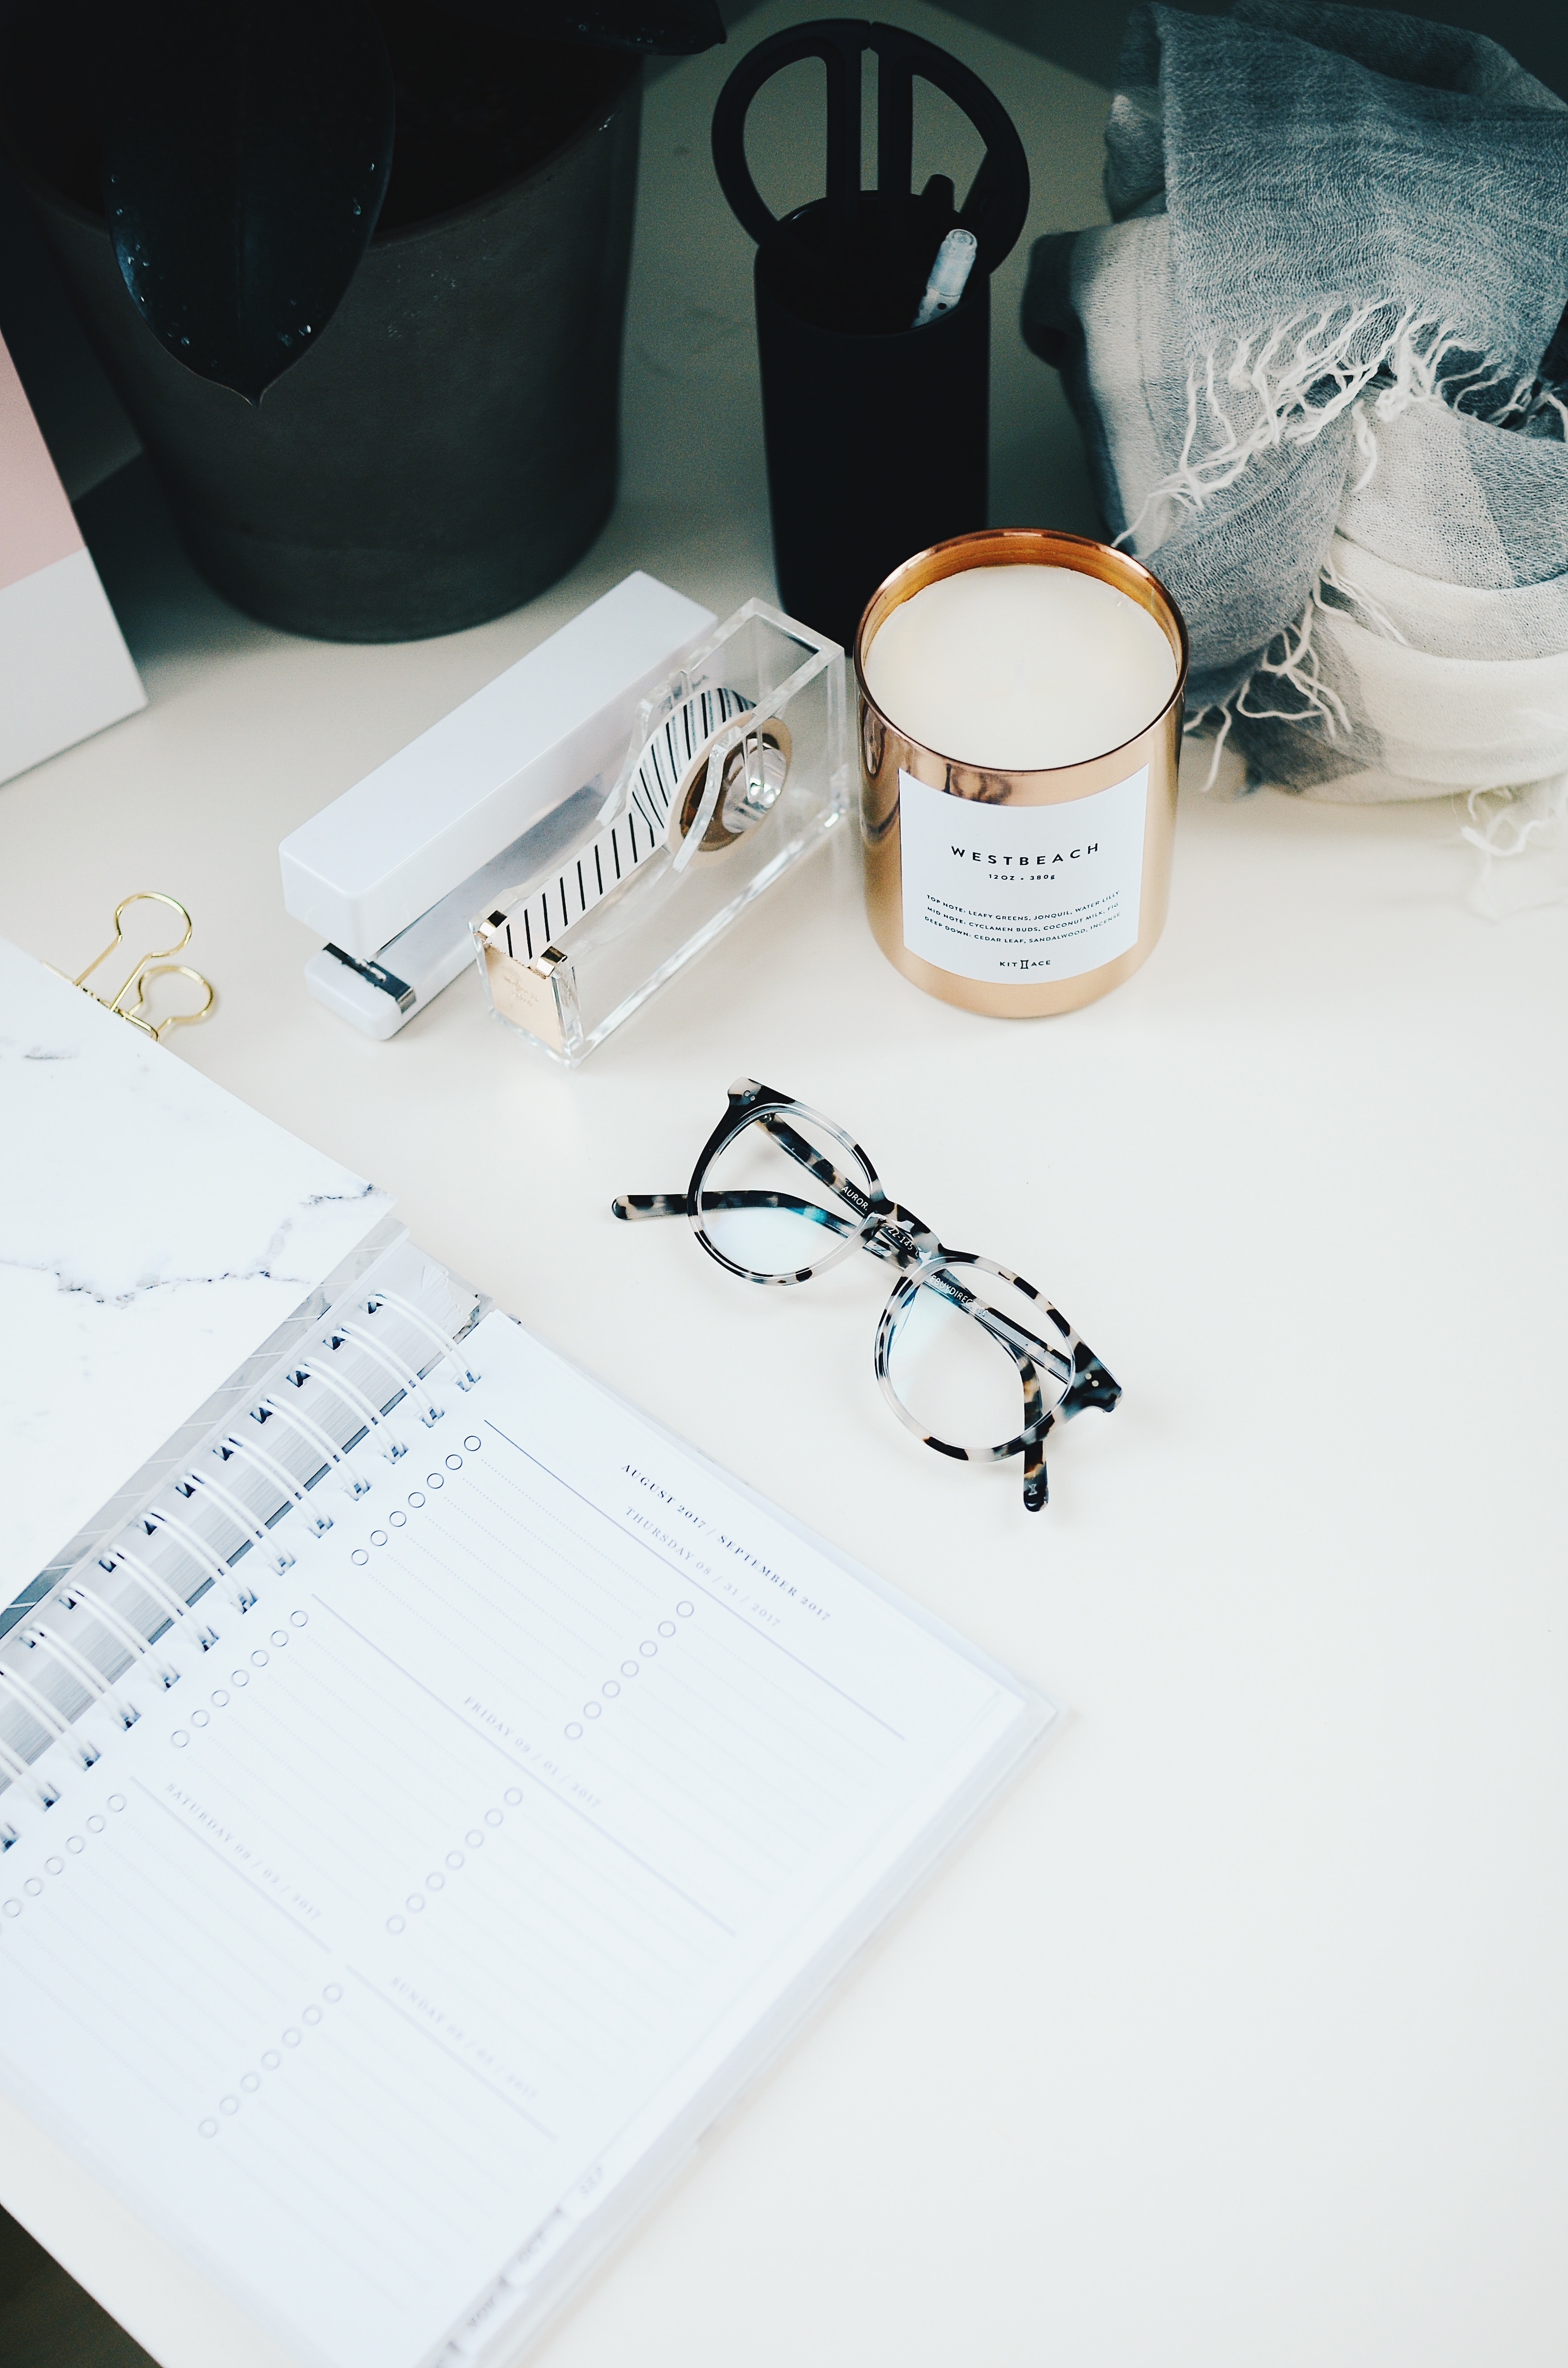 A pair of glasses next to an open planner and a scented candle on a white surface